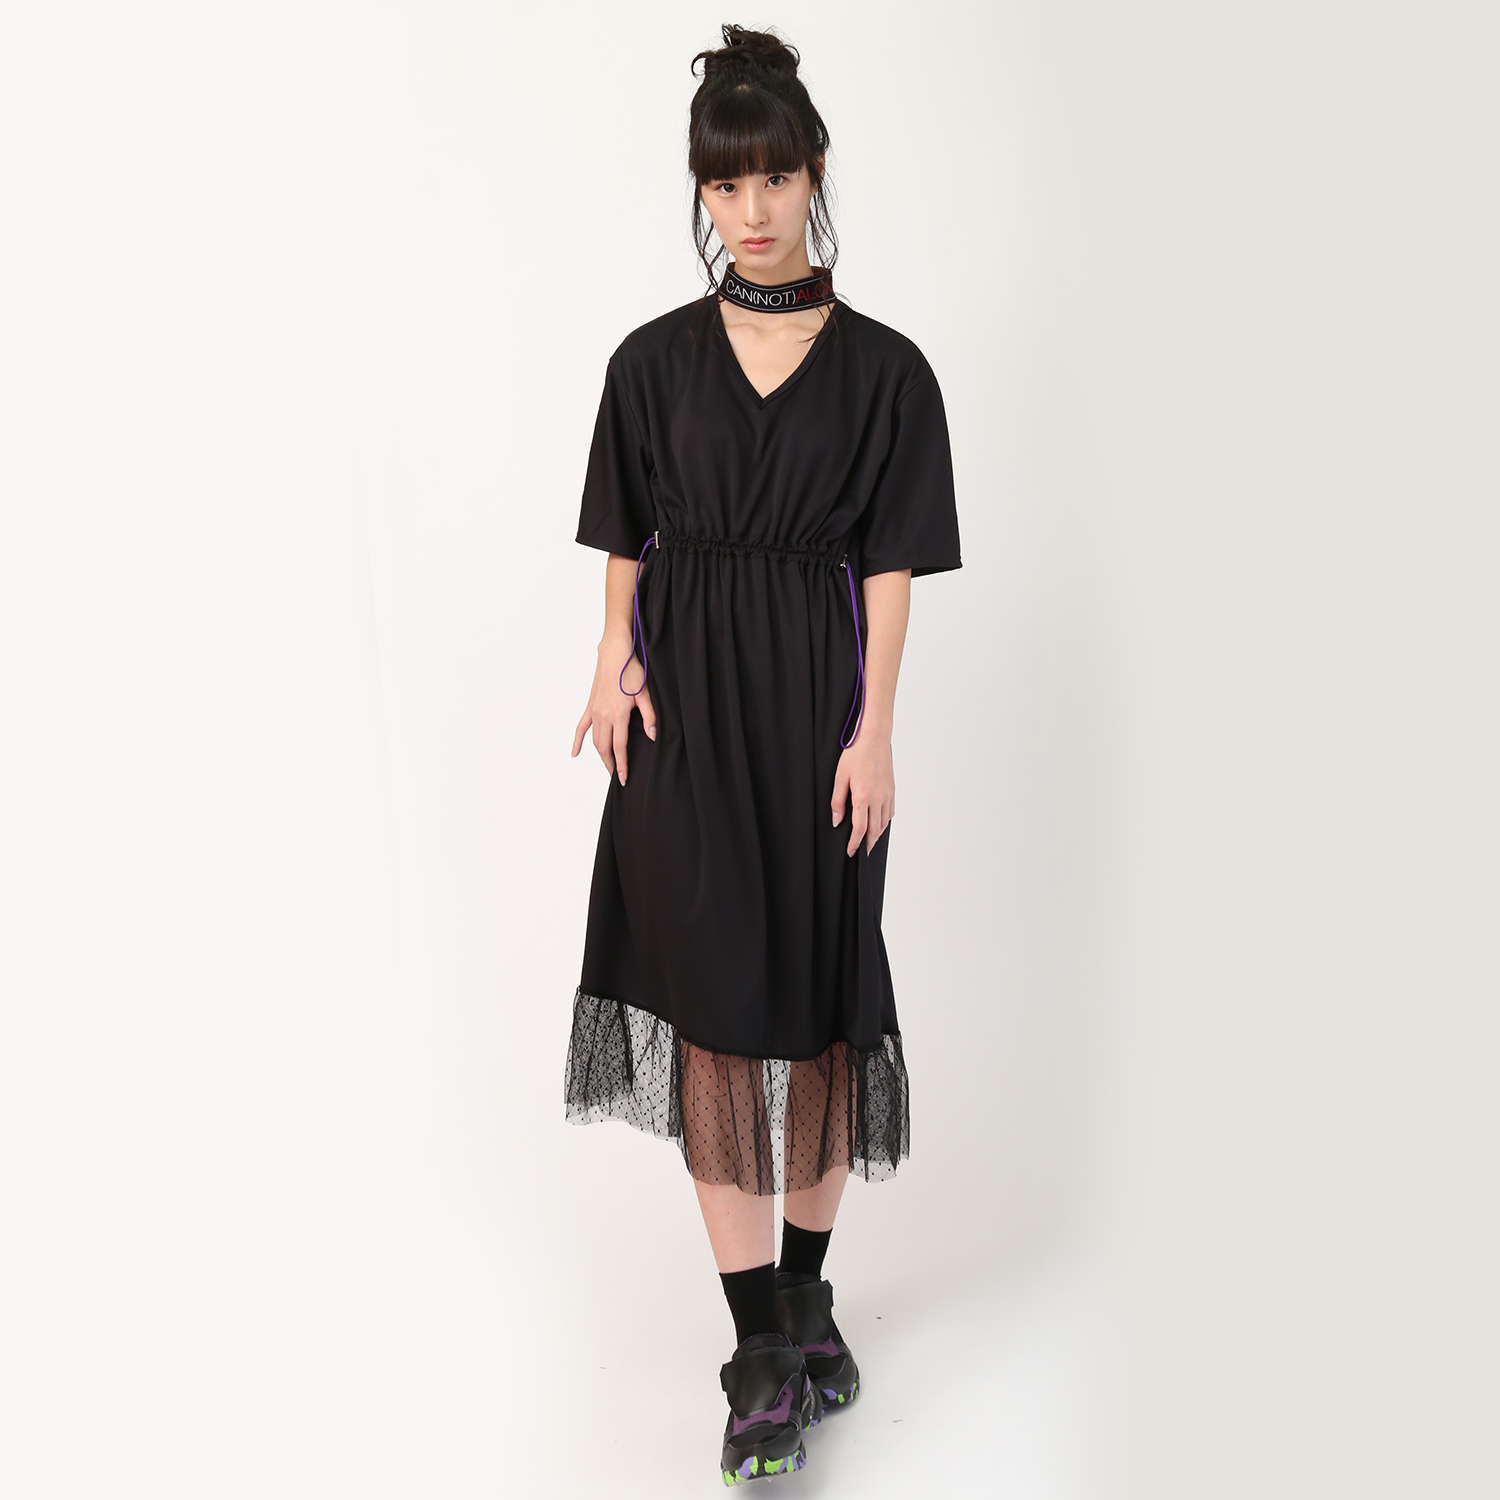 CAN(NOT) Choker Dress (ブラック)